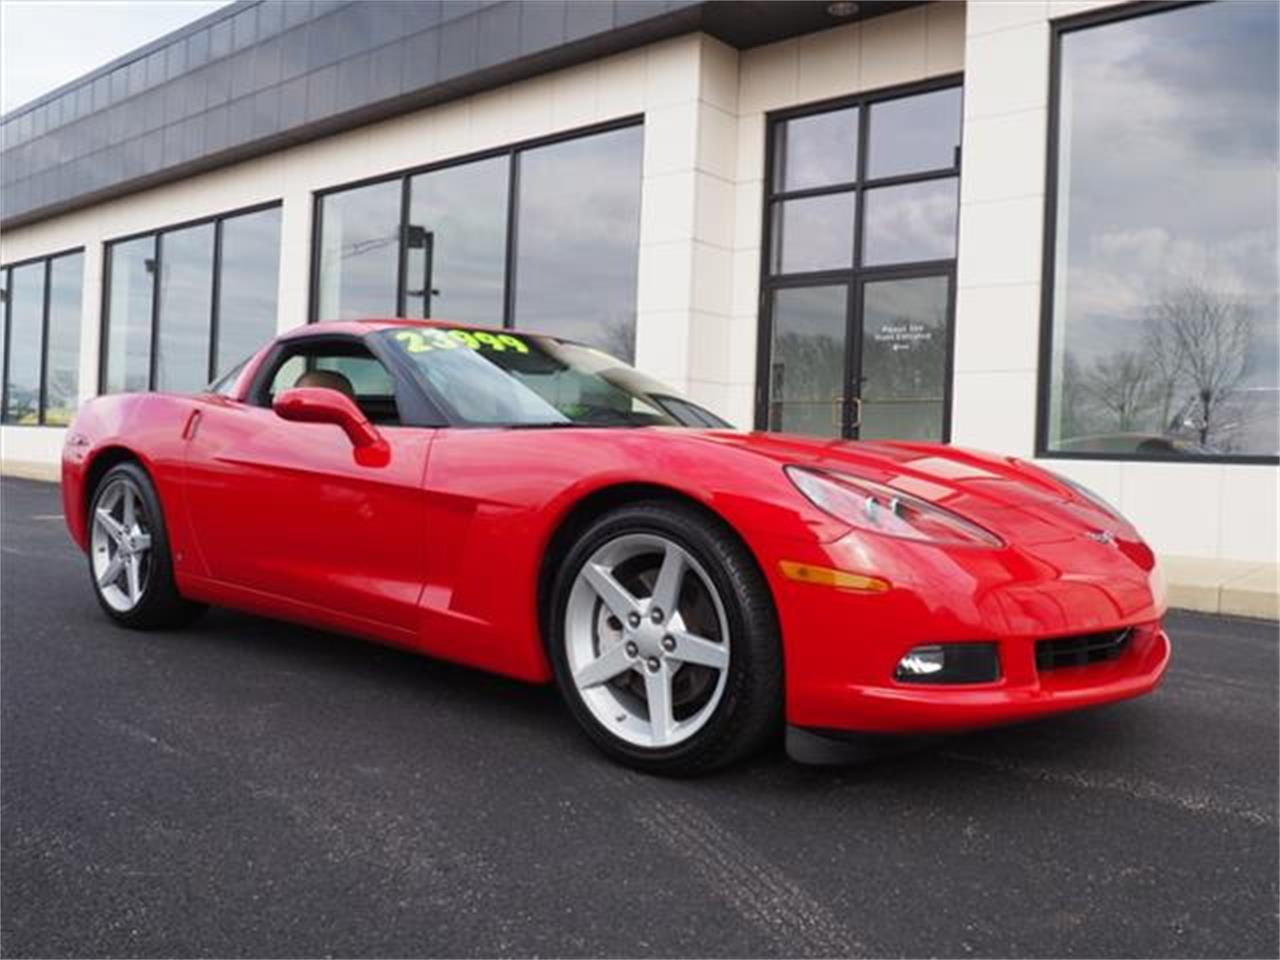 Large Picture of '06 Chevrolet Corvette - $23,999.00 - MB5M